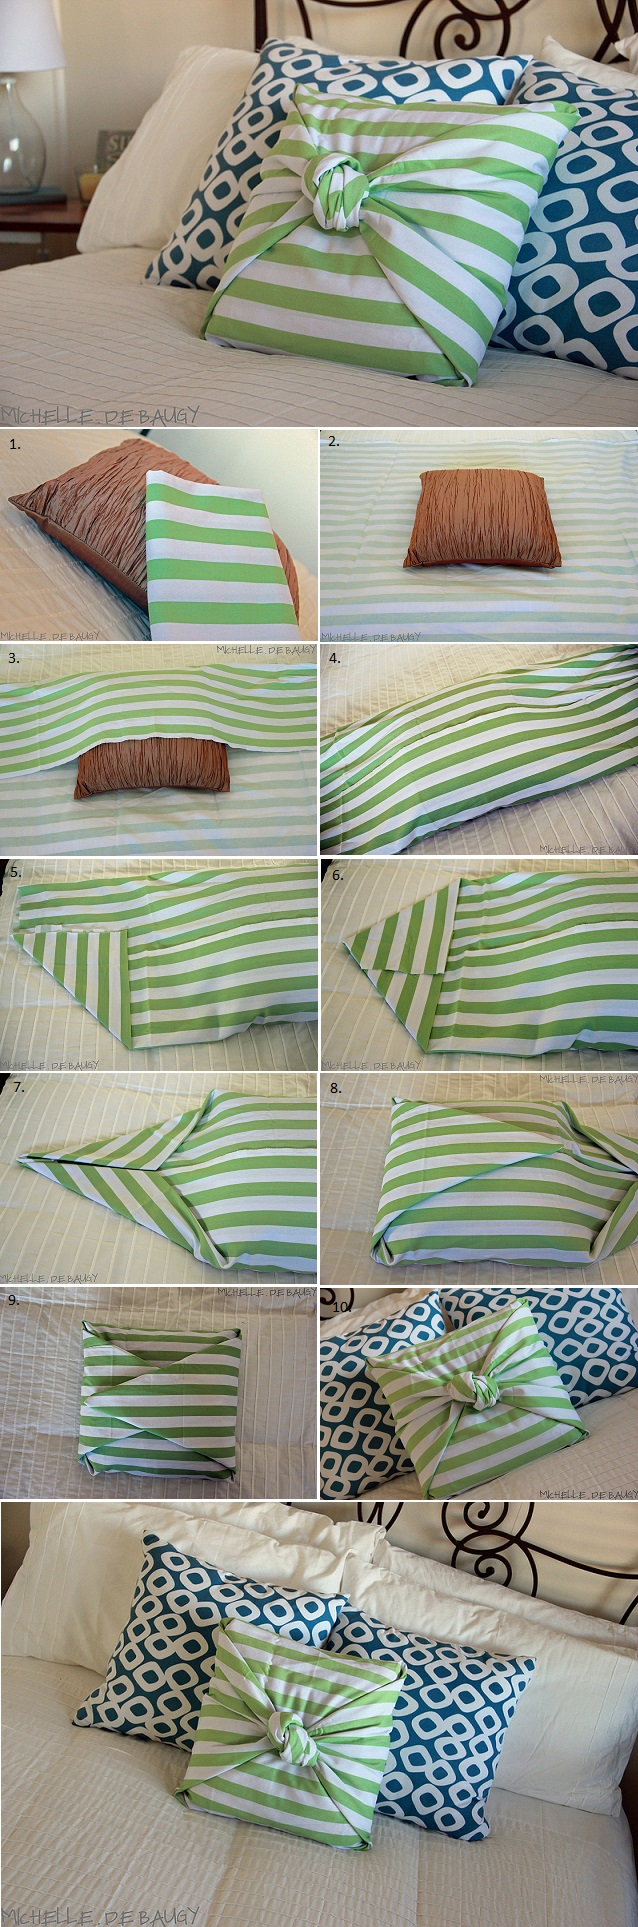 No Sew Pillow Case - DIY